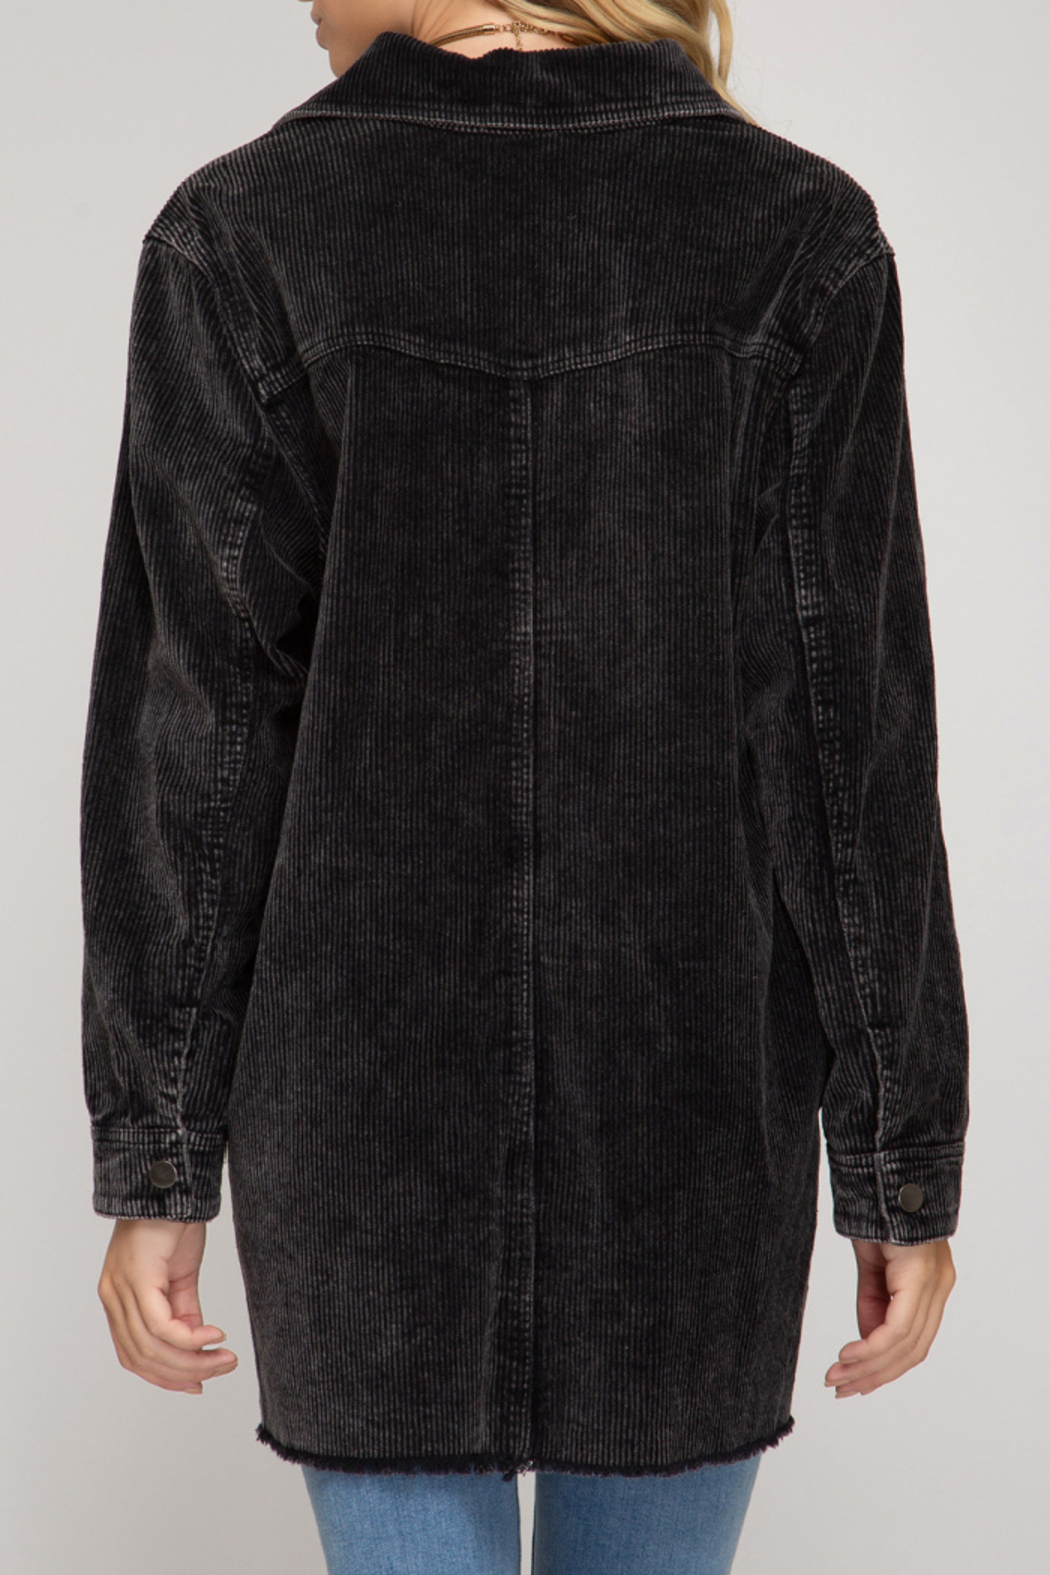 She + Sky Mineral Washed Long Corduroy Jacket - Front Full Image